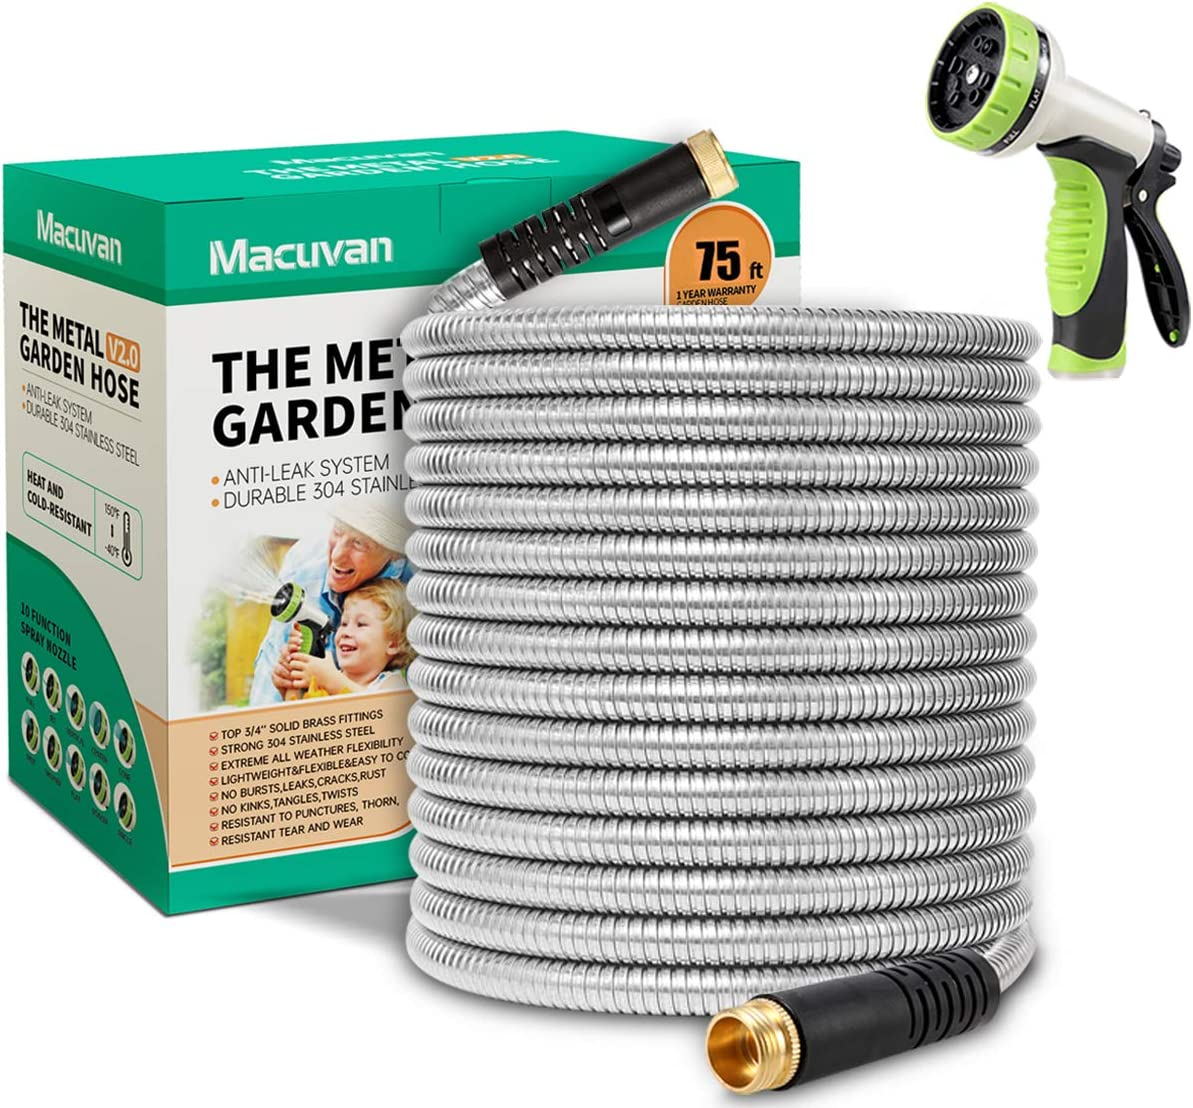 Macuvan Flexible Metal Garden Hose 75ft-Heavy Duty Water Hose with Durable 304 Stainless Steel and 10 Way Spray Nozzle-Strong 3/4'' Solid Brass Fittings-Outdoor Yard No Kink Lightweight Long Hose Pipe